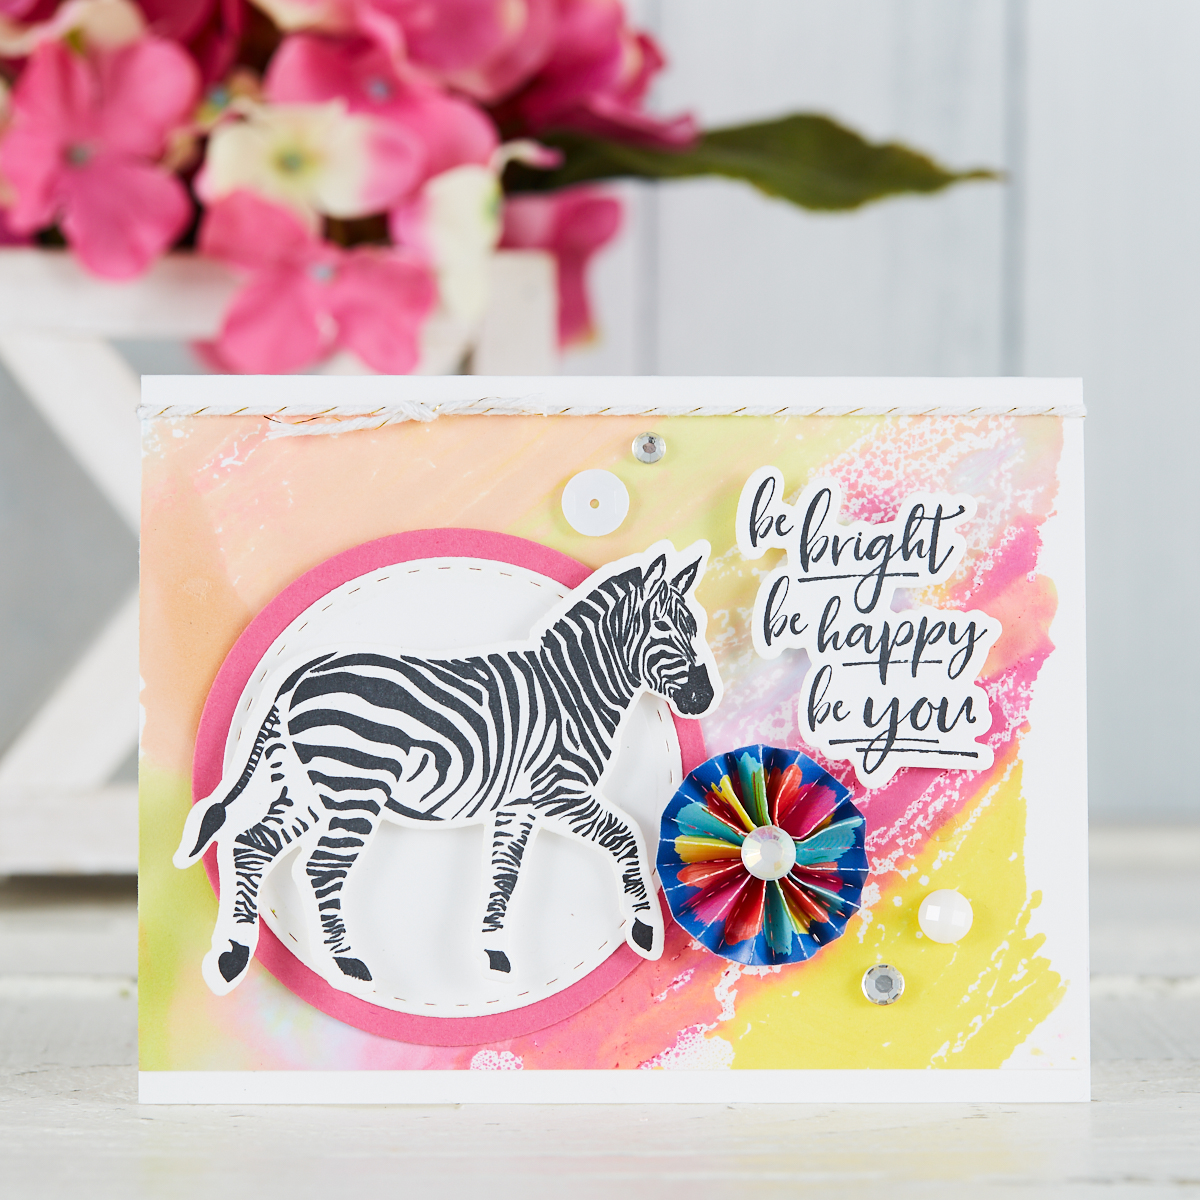 handmade card by Mariana Grigsby with zebra stamp from Escape the Ordinary Stamp Set from Fun Stampers Journey, with Gel Press watercolor background in pink, peach and yellow #funstampersjourney #cardmaking